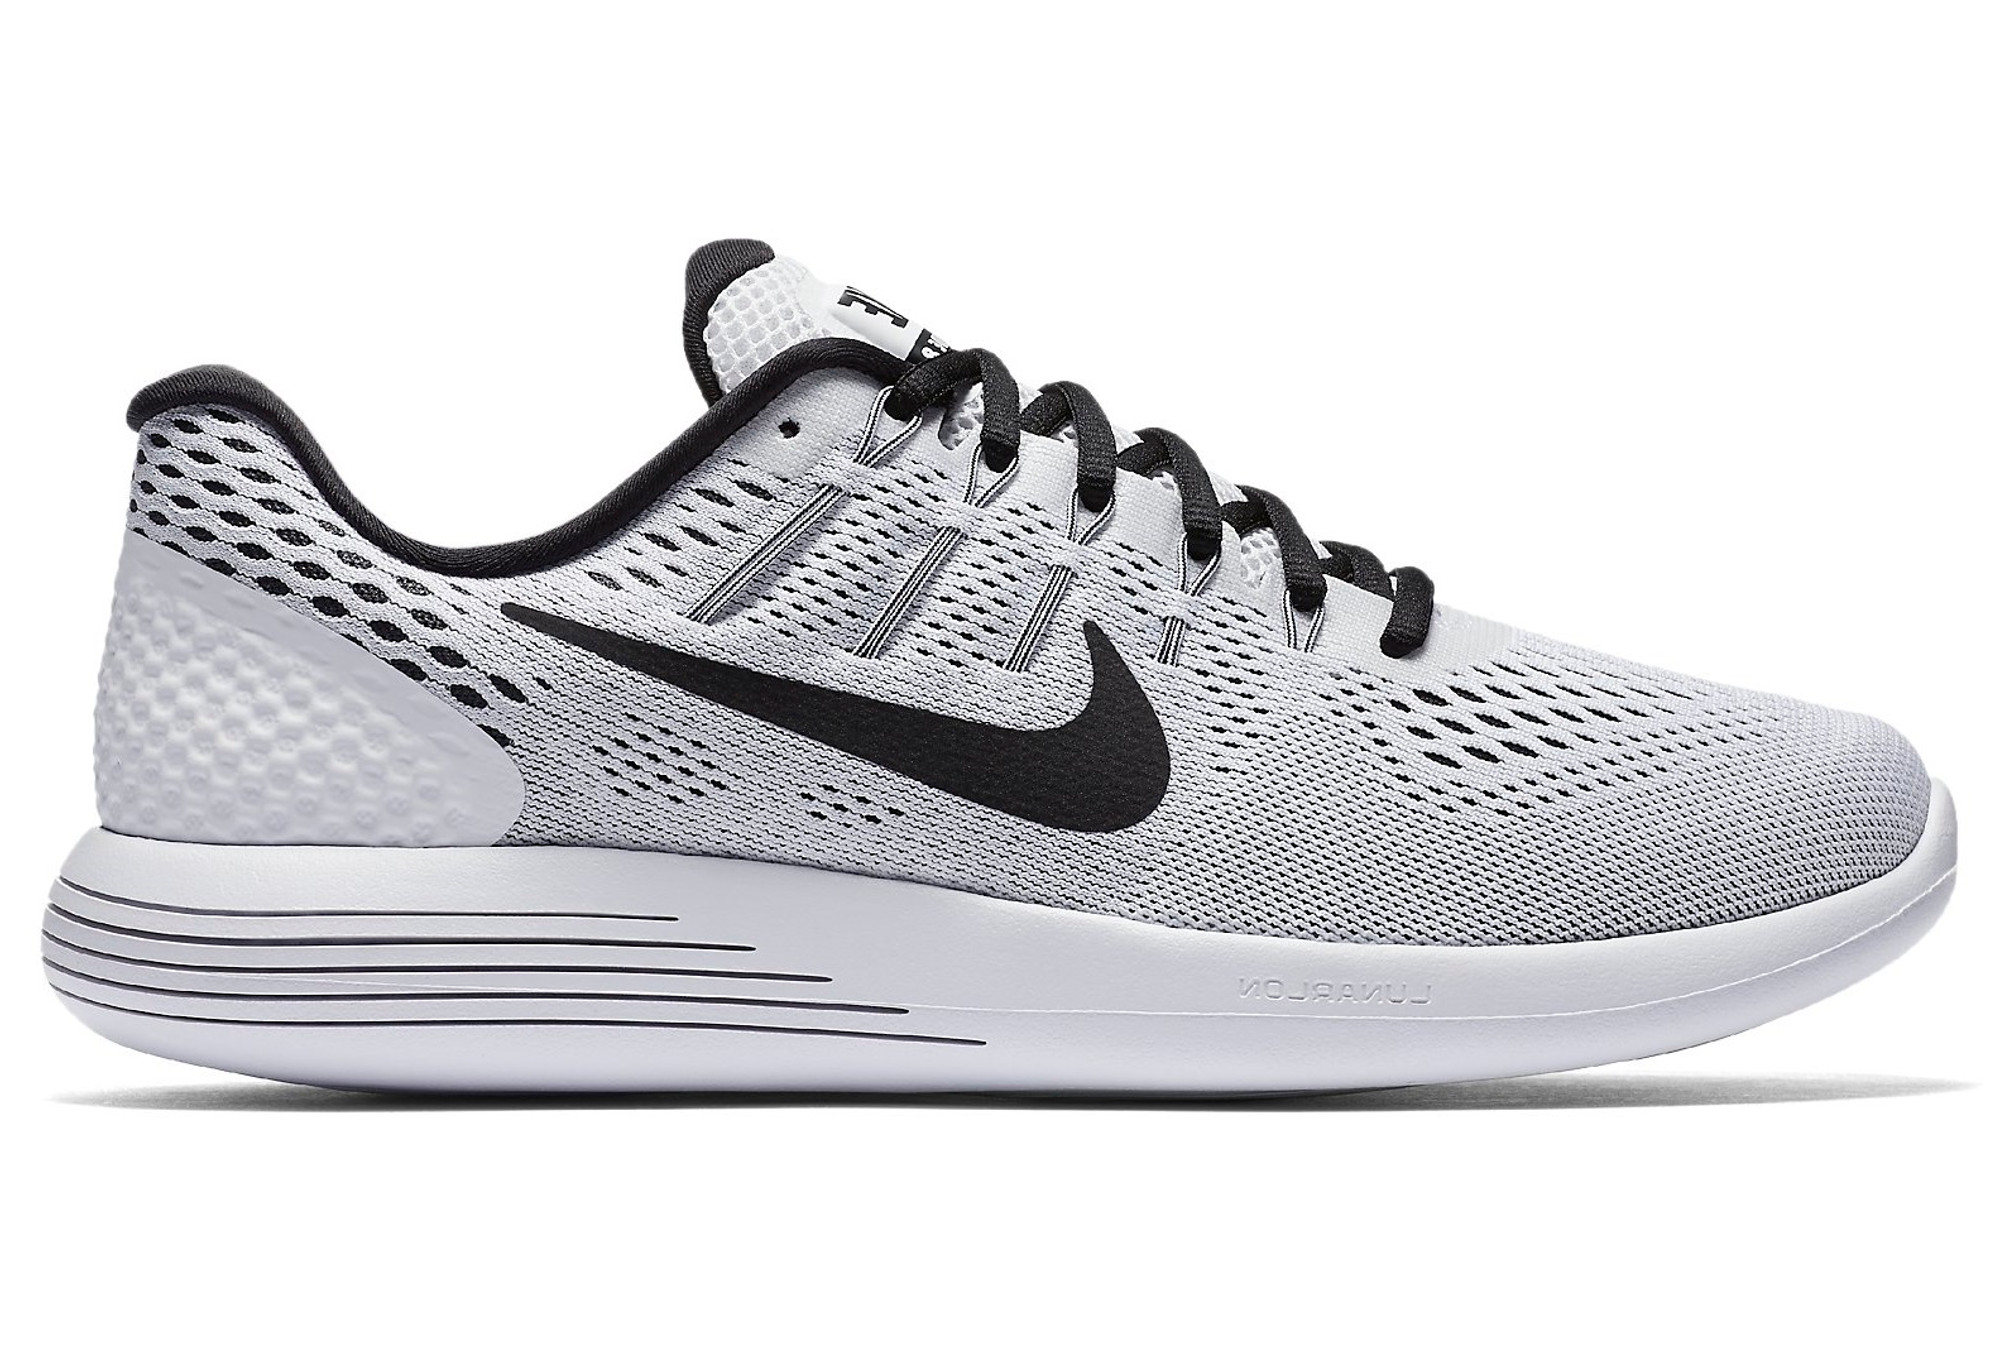 7482355c8a2f Nike LunarGlide 8 Shoes White Men